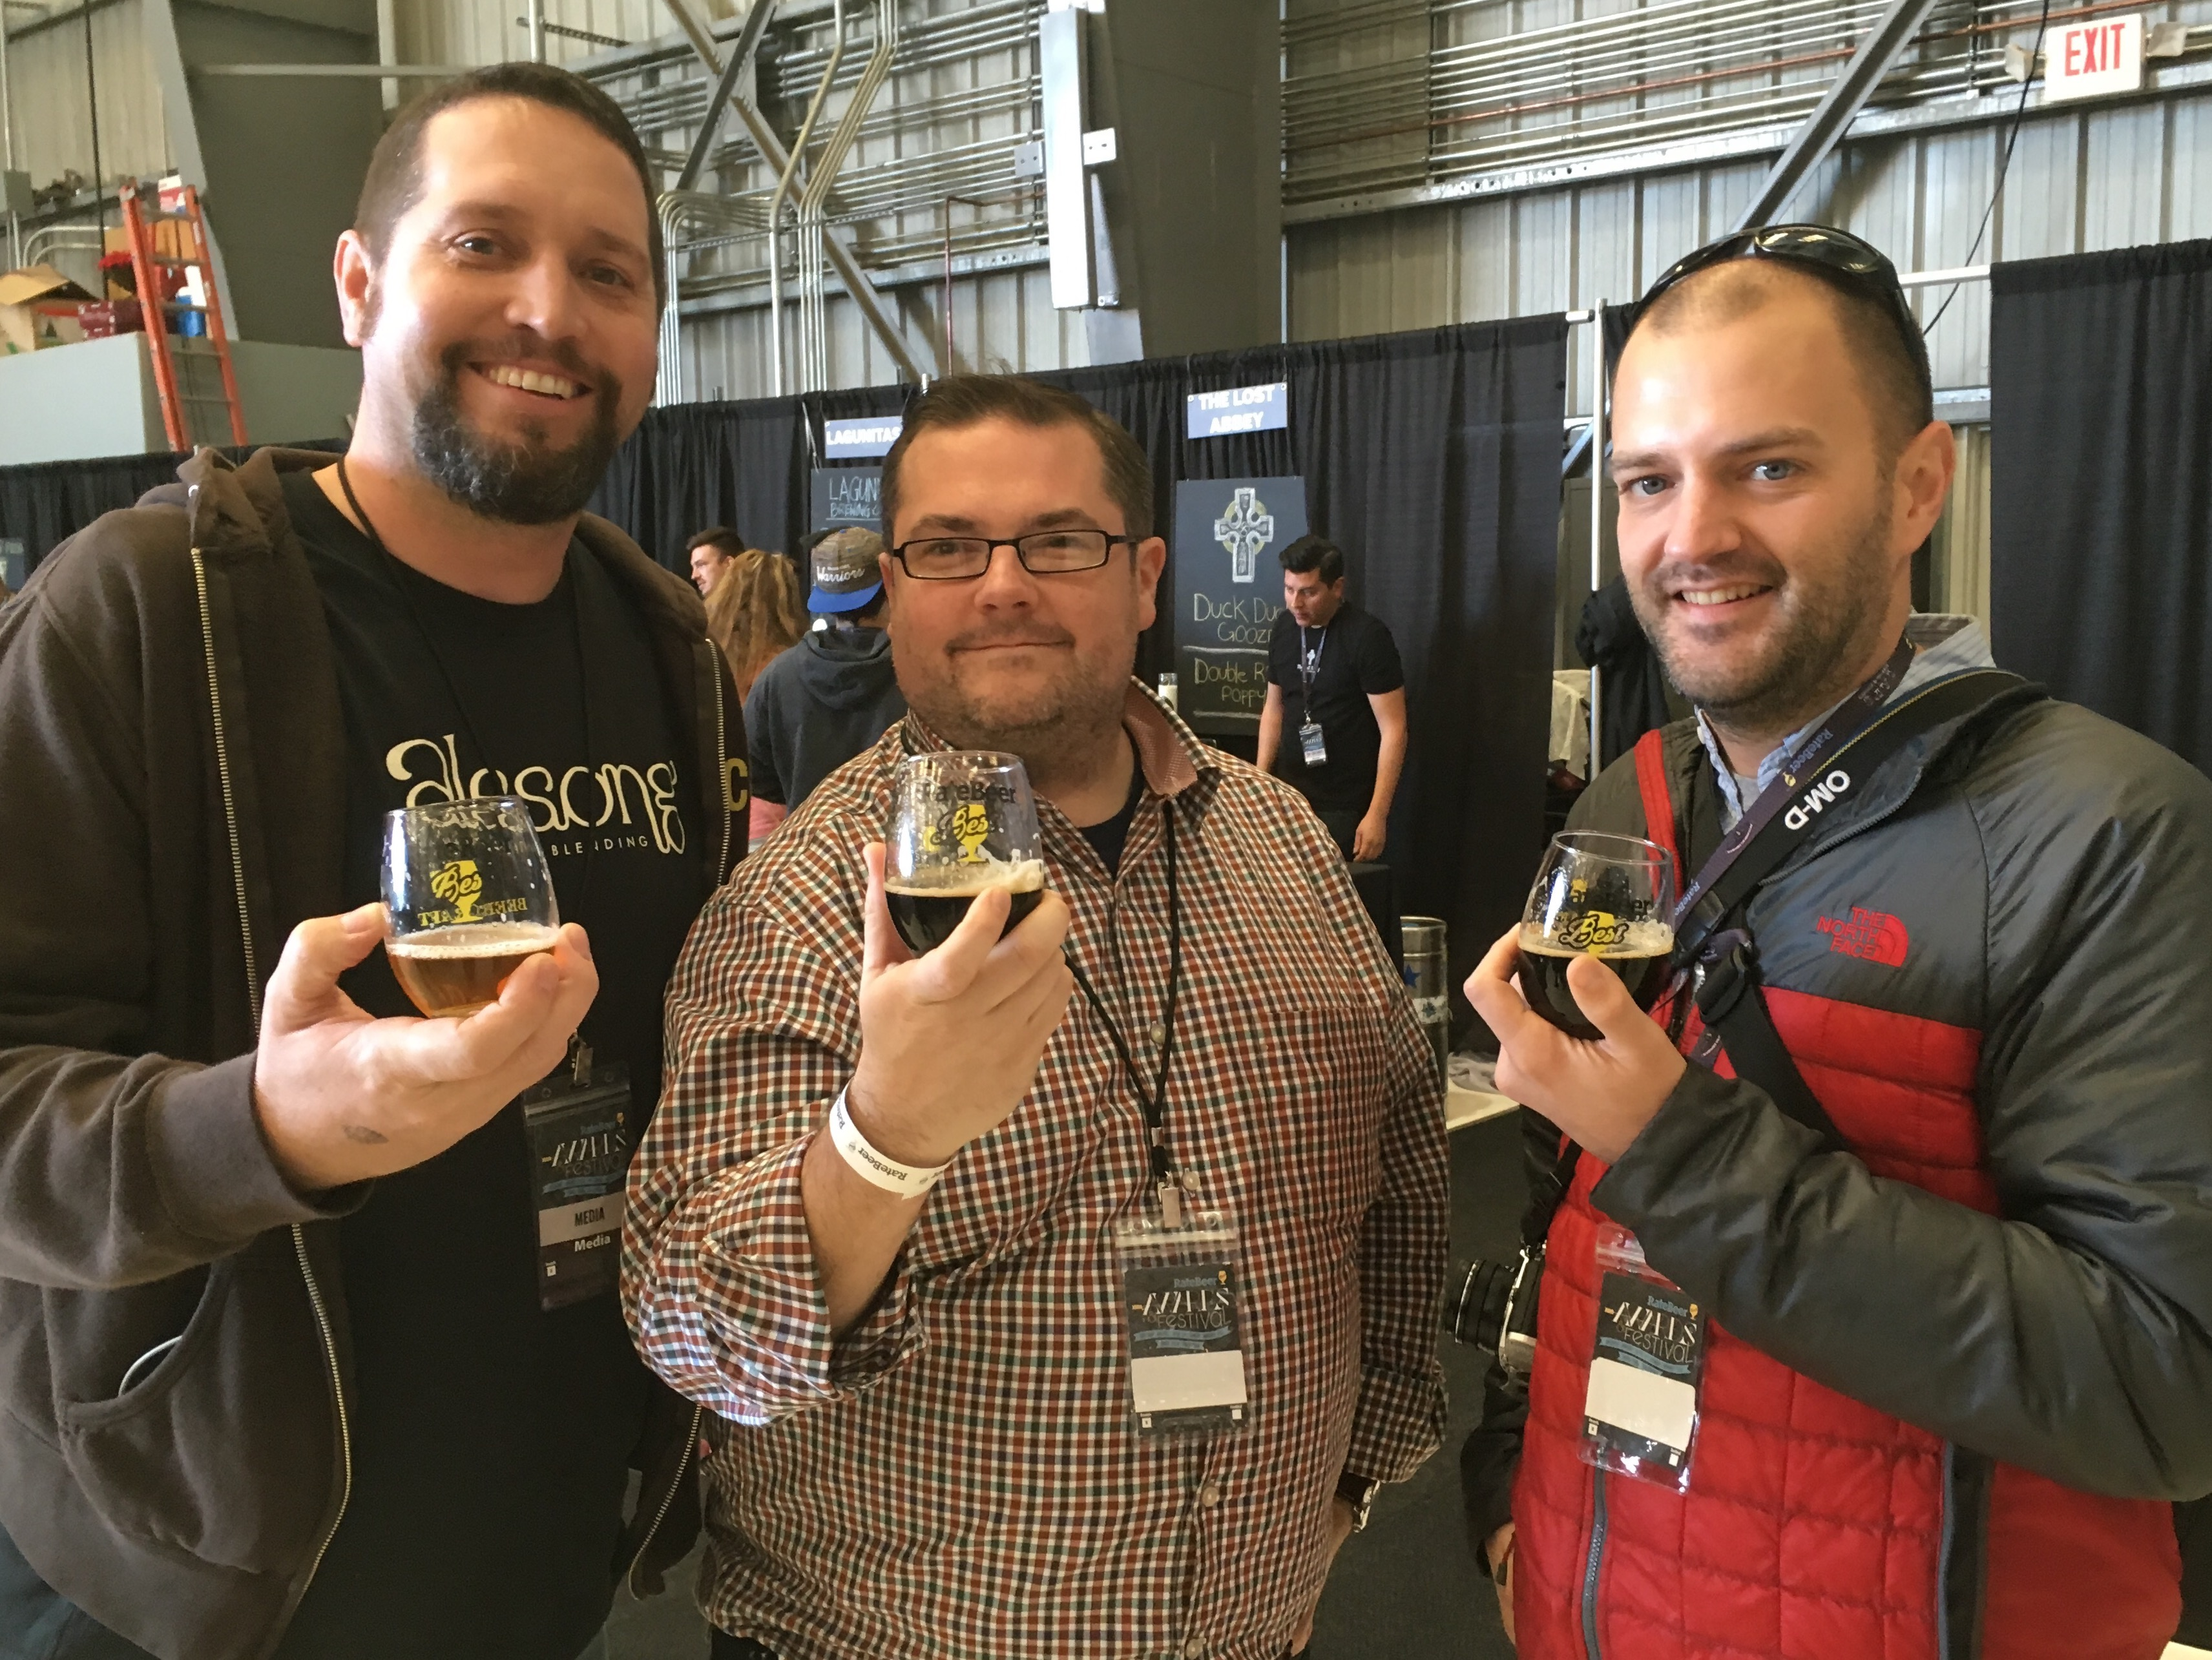 Matt Van Wyk of Alesong Brewing & Blending and John Holl & Jon Page of All About Beer Magazine at 2016 RateBeer Best Festival.